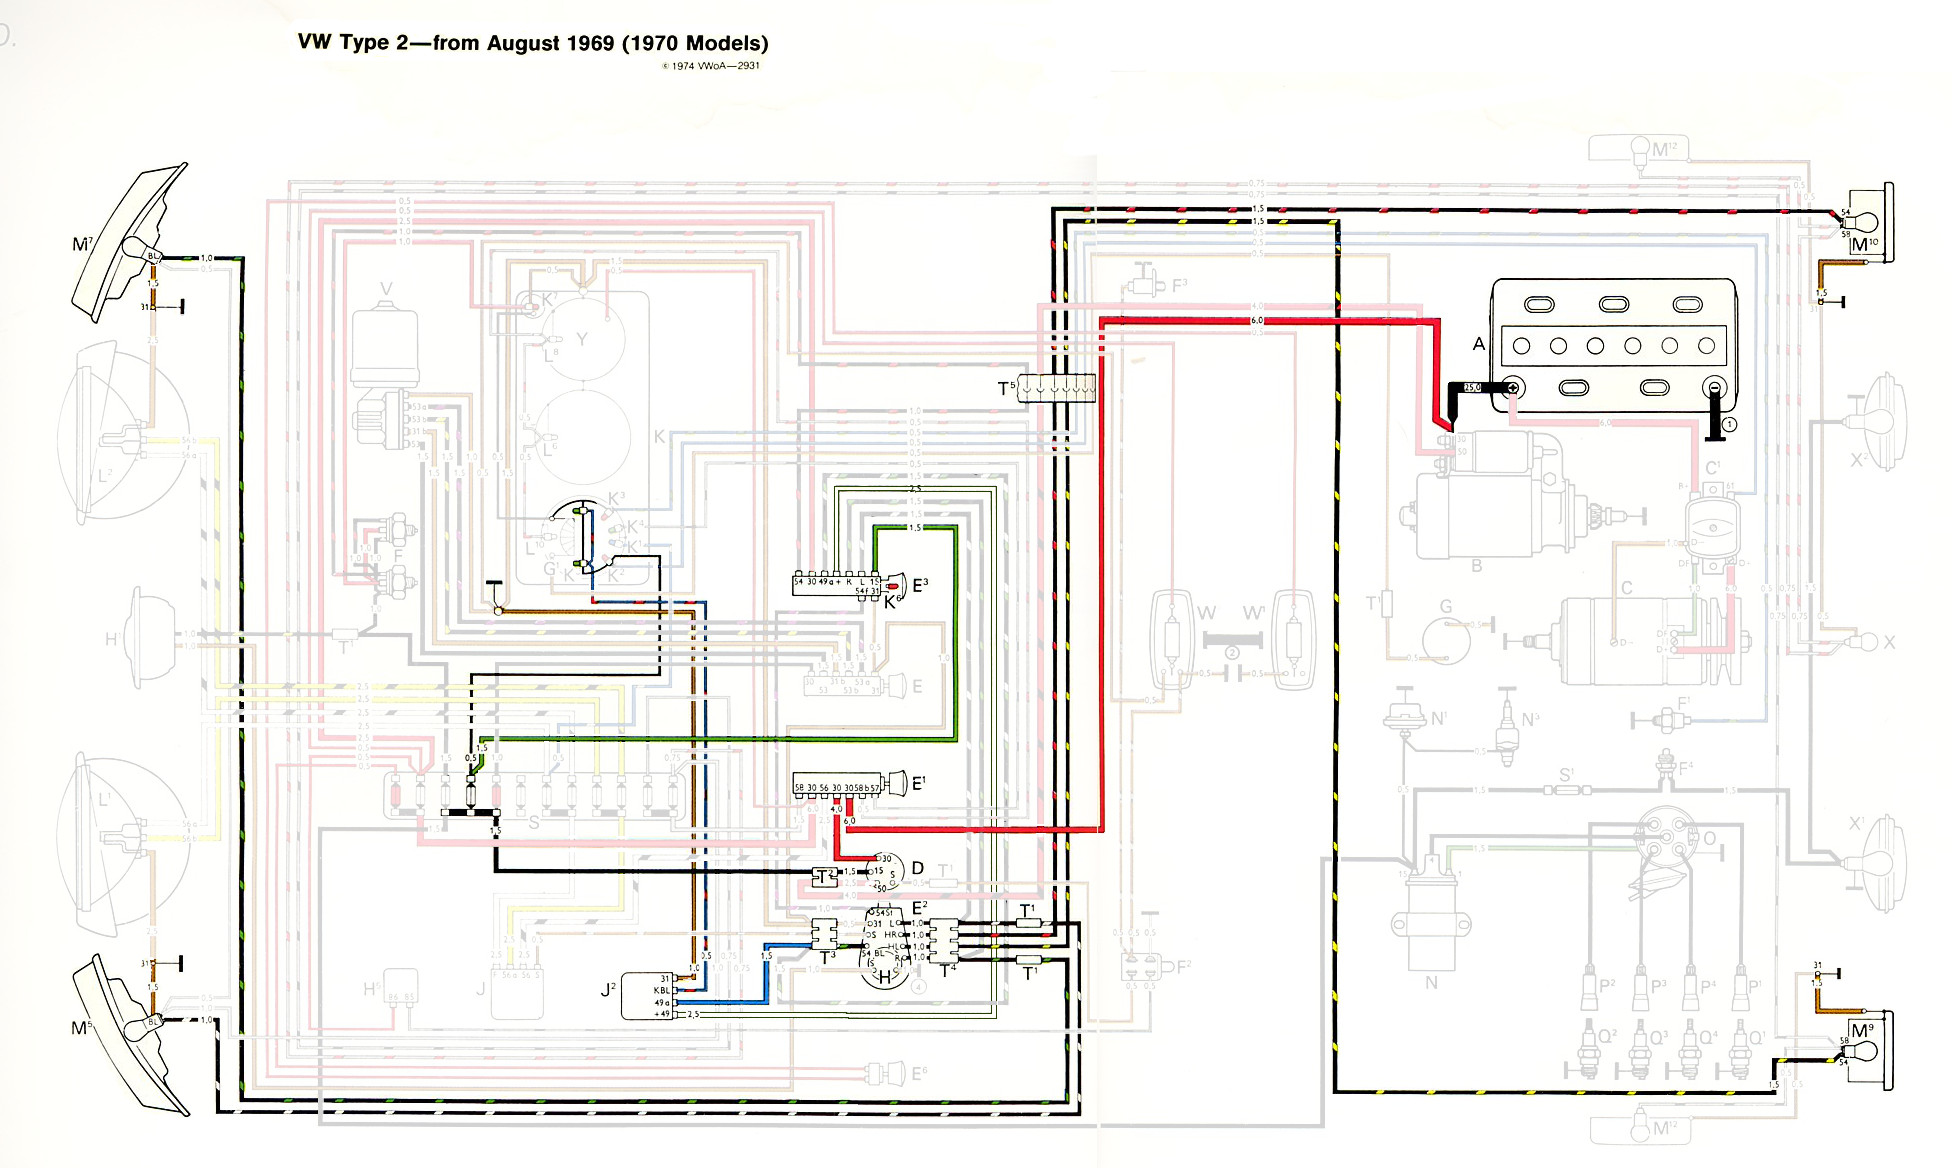 Type 2 Wiring Diagrams Fan Diagram Photos For Help Your Working